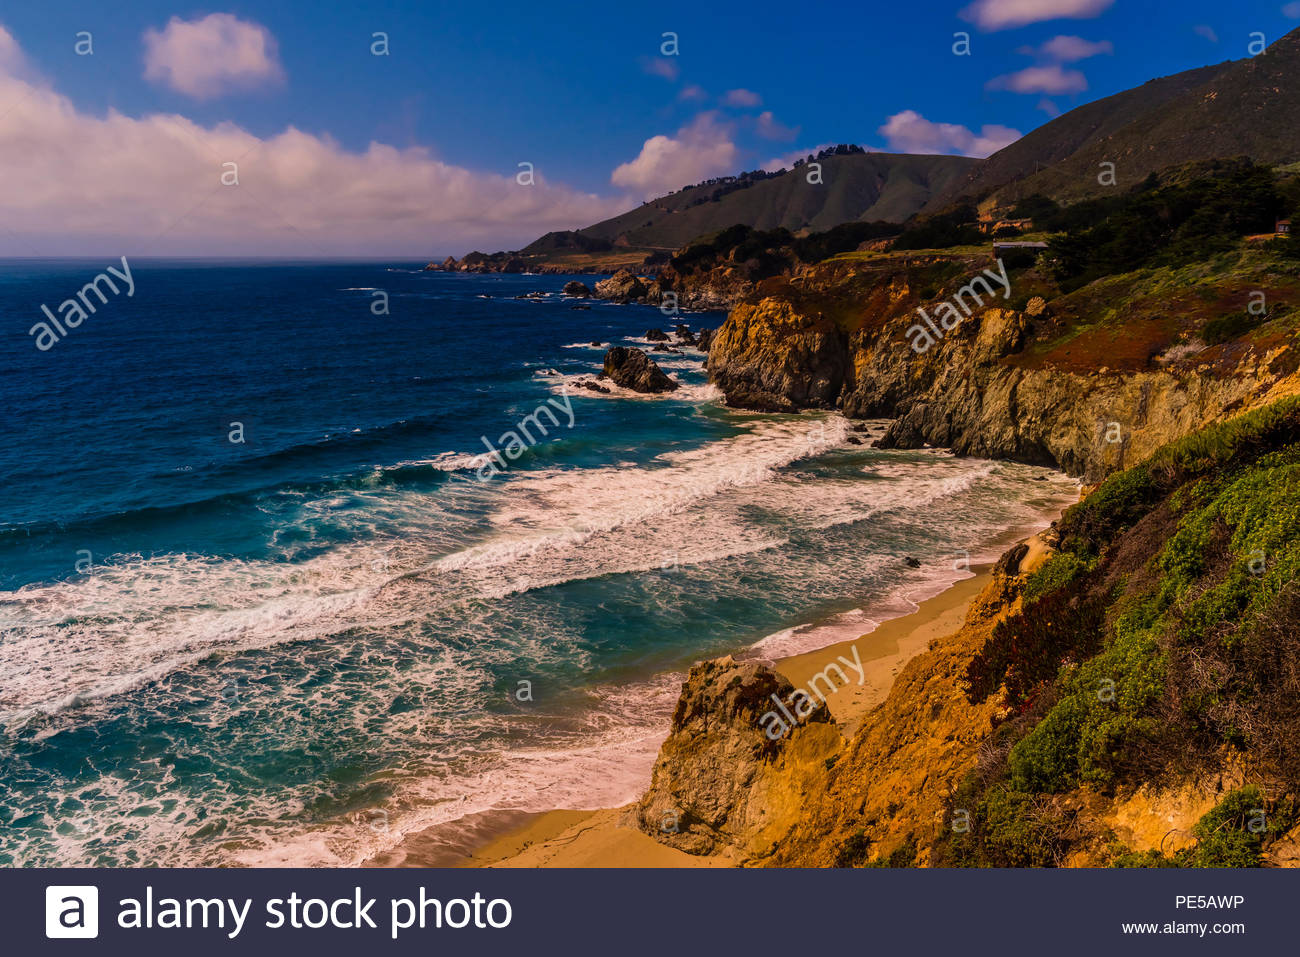 Big Sur coast between Carmel Highlands and Big Sur, Monterey County, California USA. - Stock Image